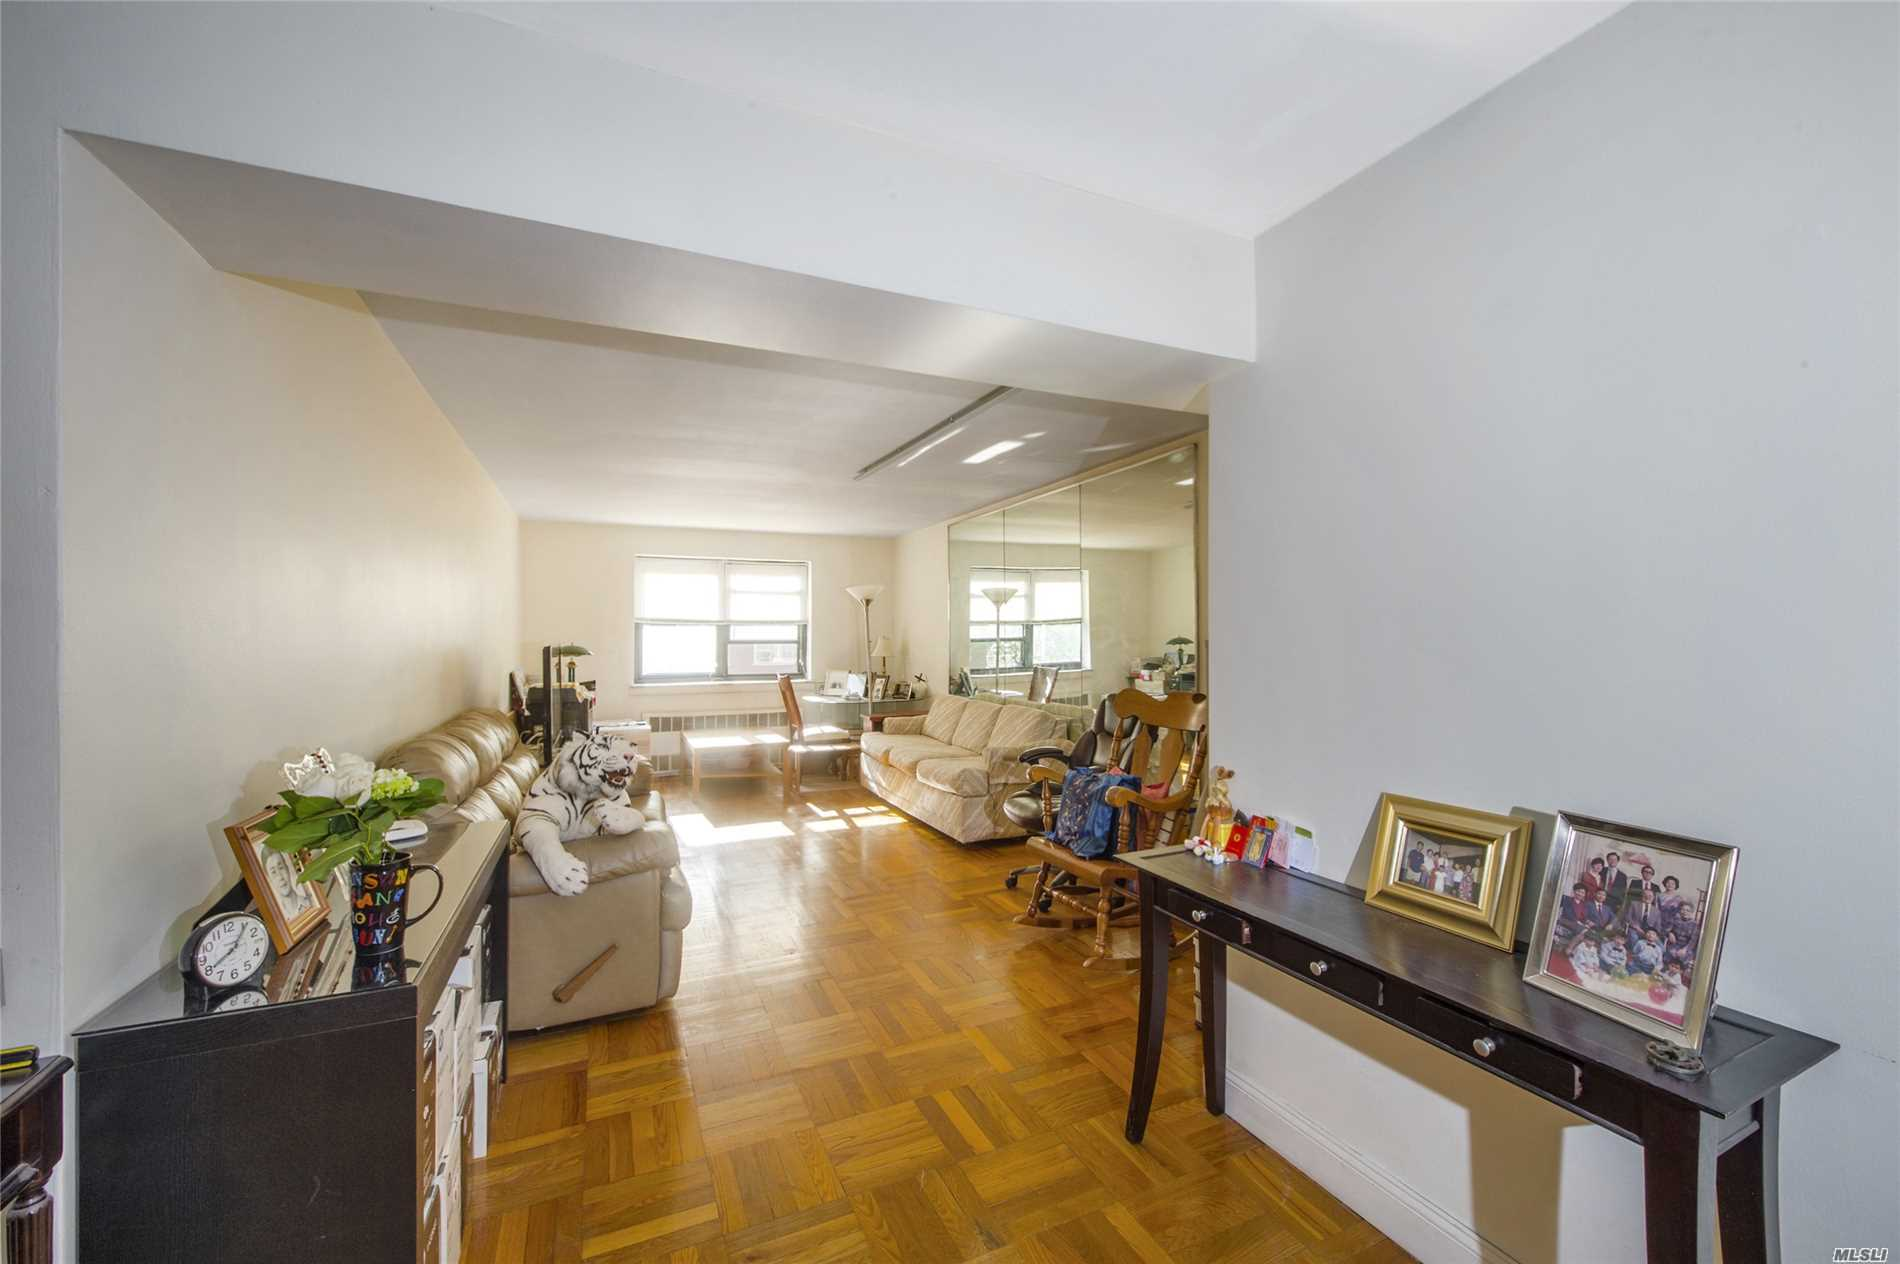 31-50 140th St 11354 - One of Flushing Homes for Sale